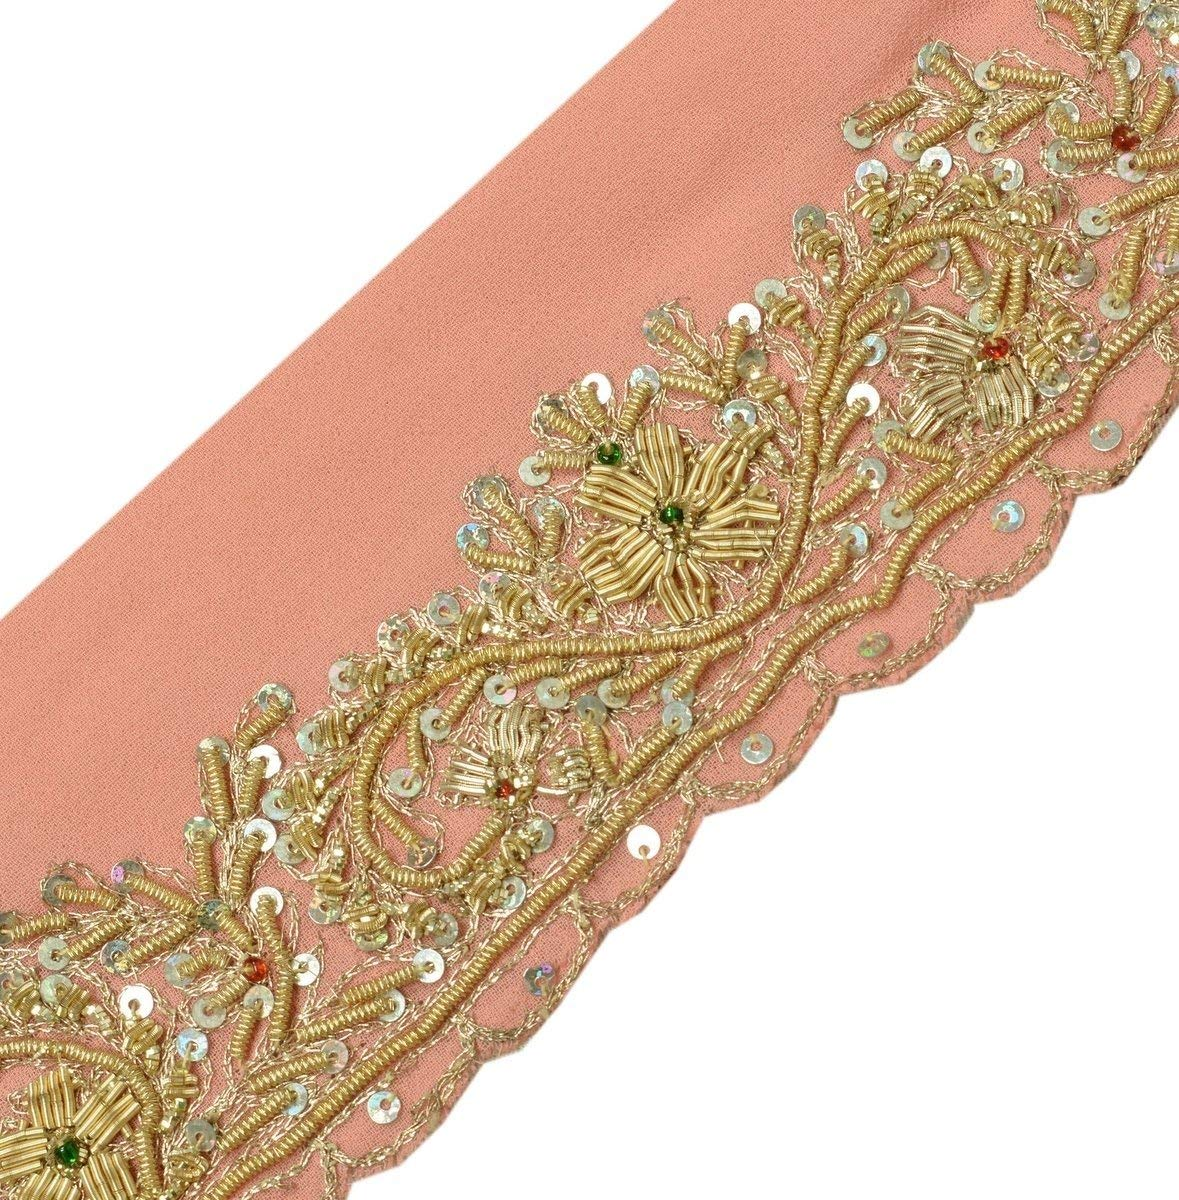 Reasonable Vintage Sari Border Antique Hand Beaded Trim Sewing Pink Zari Lace Embellishments & Finishes Trims